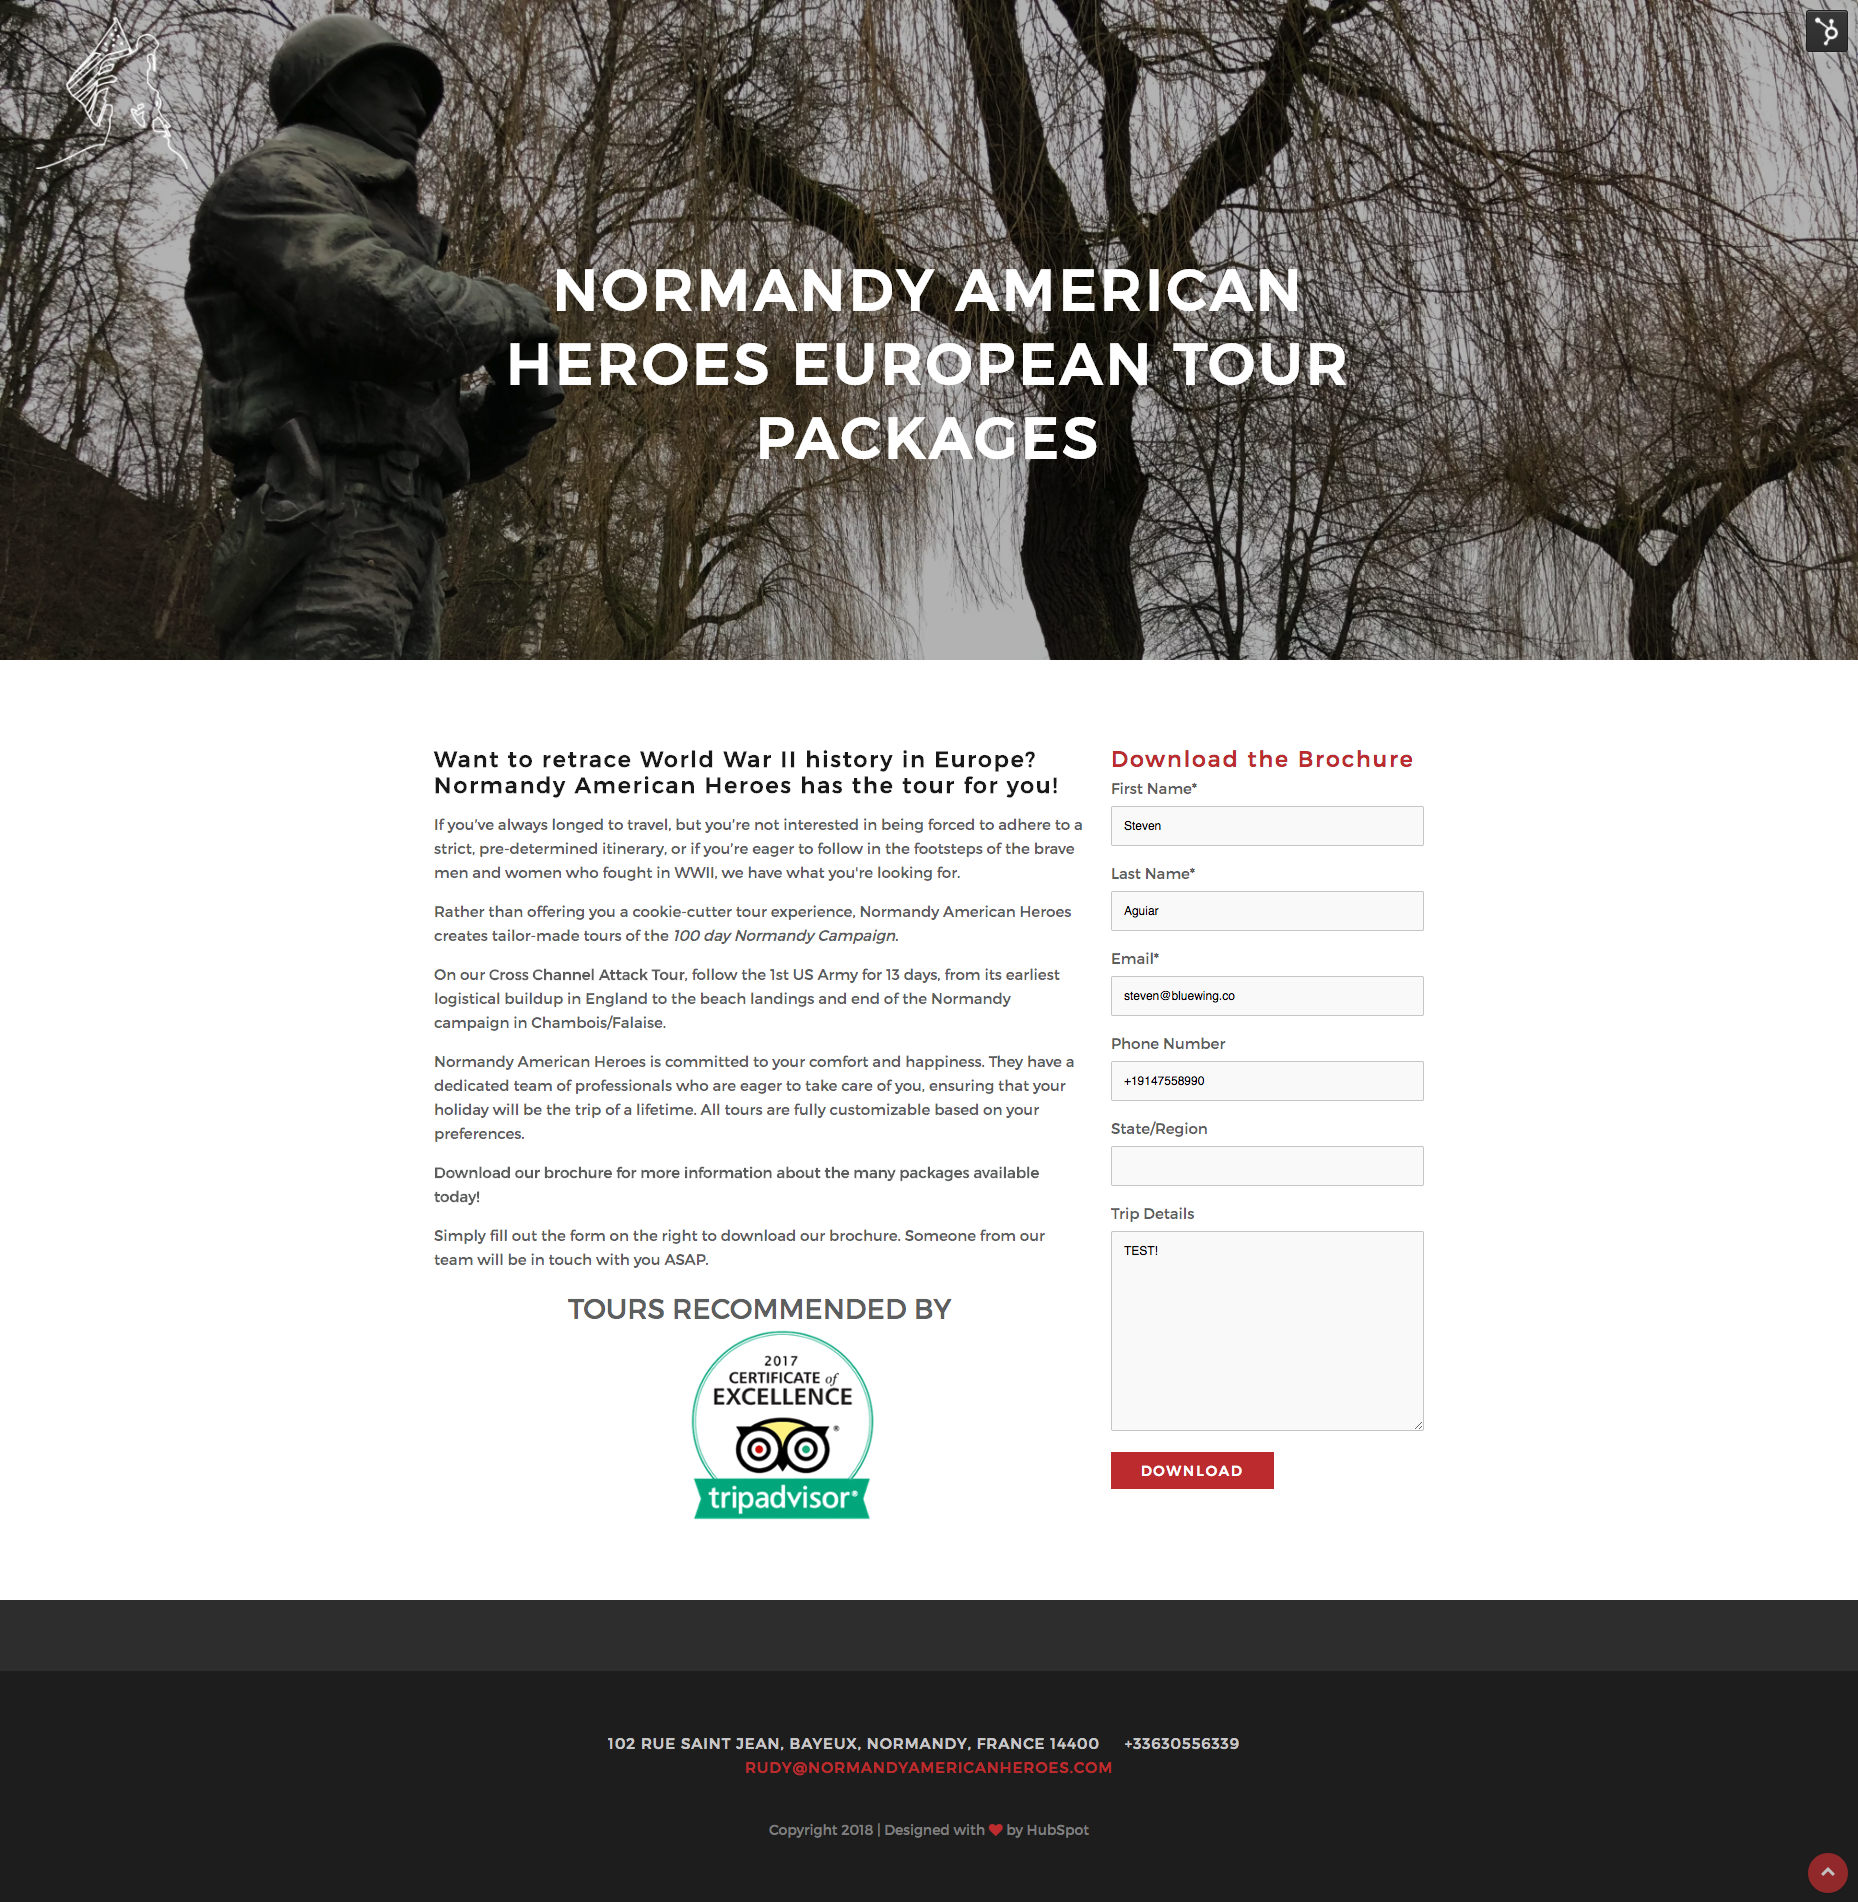 screencapture-normandyamericanheroes-normandy-american-heroes-european-tour-packages-2018-03-12-16_29_34